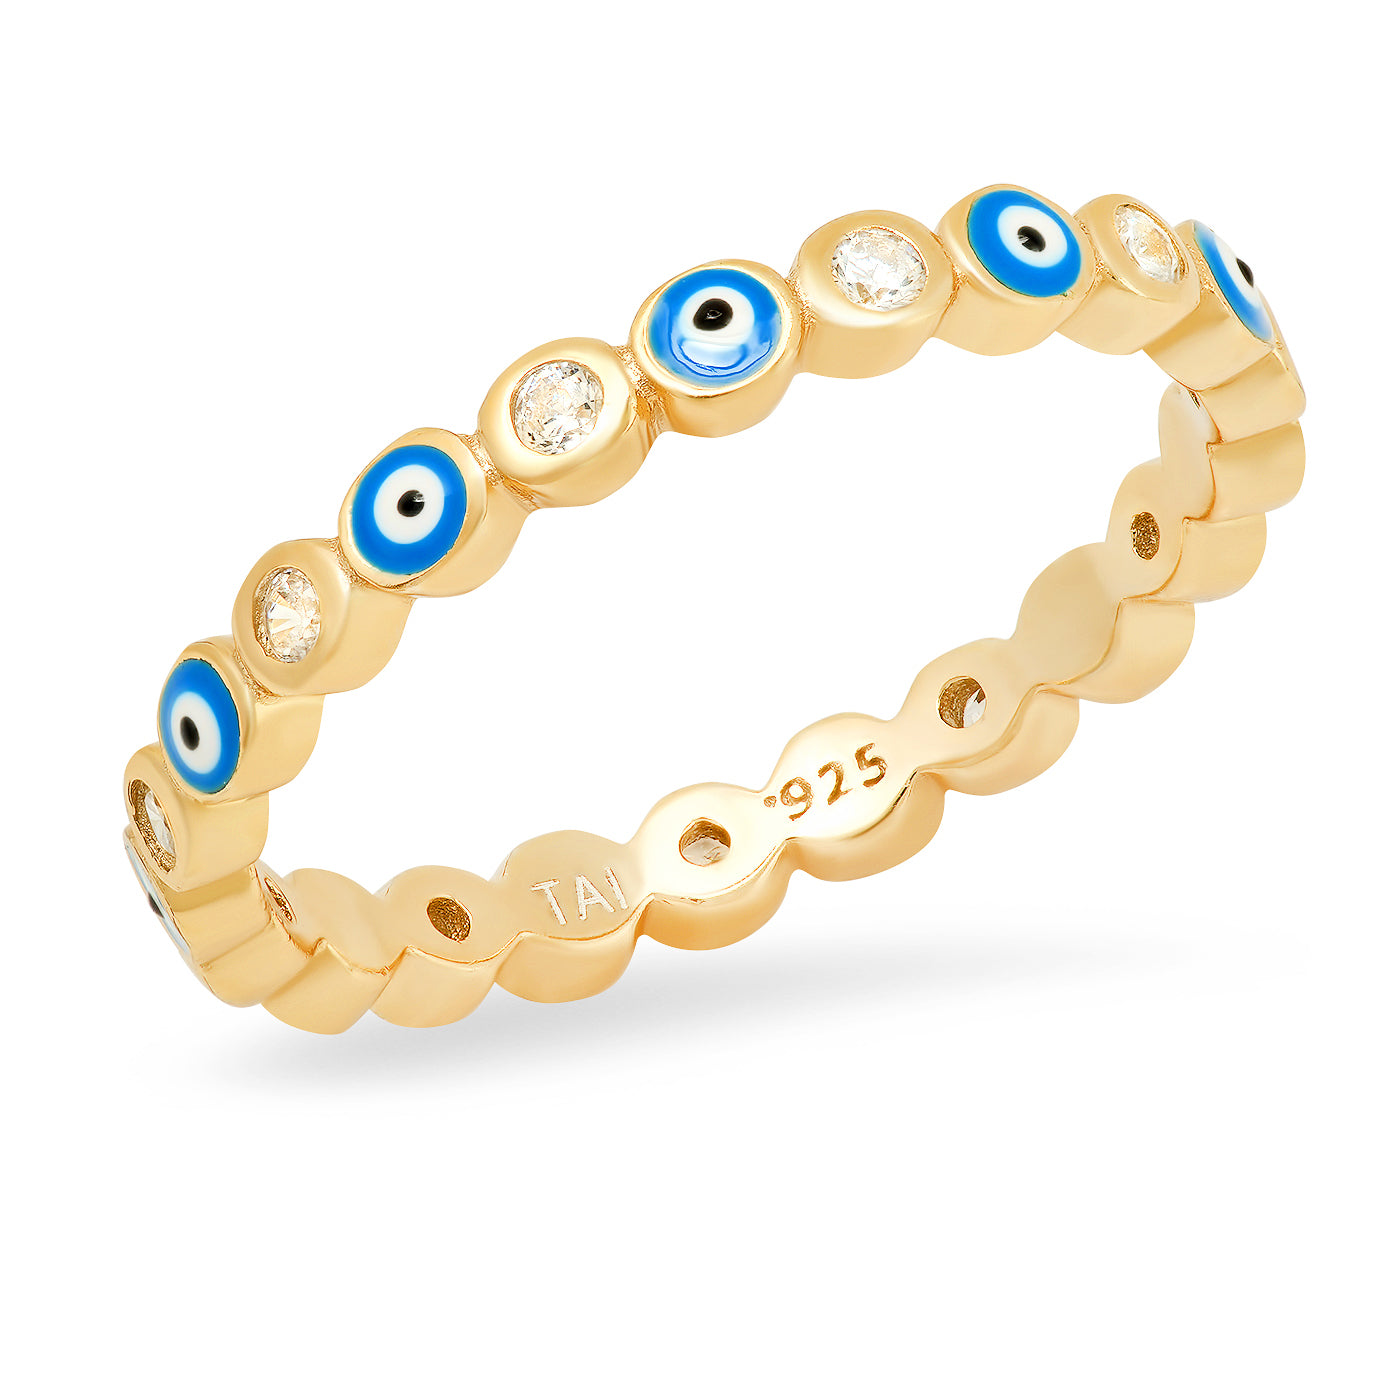 Enamel & CZ Evil Eye Ring